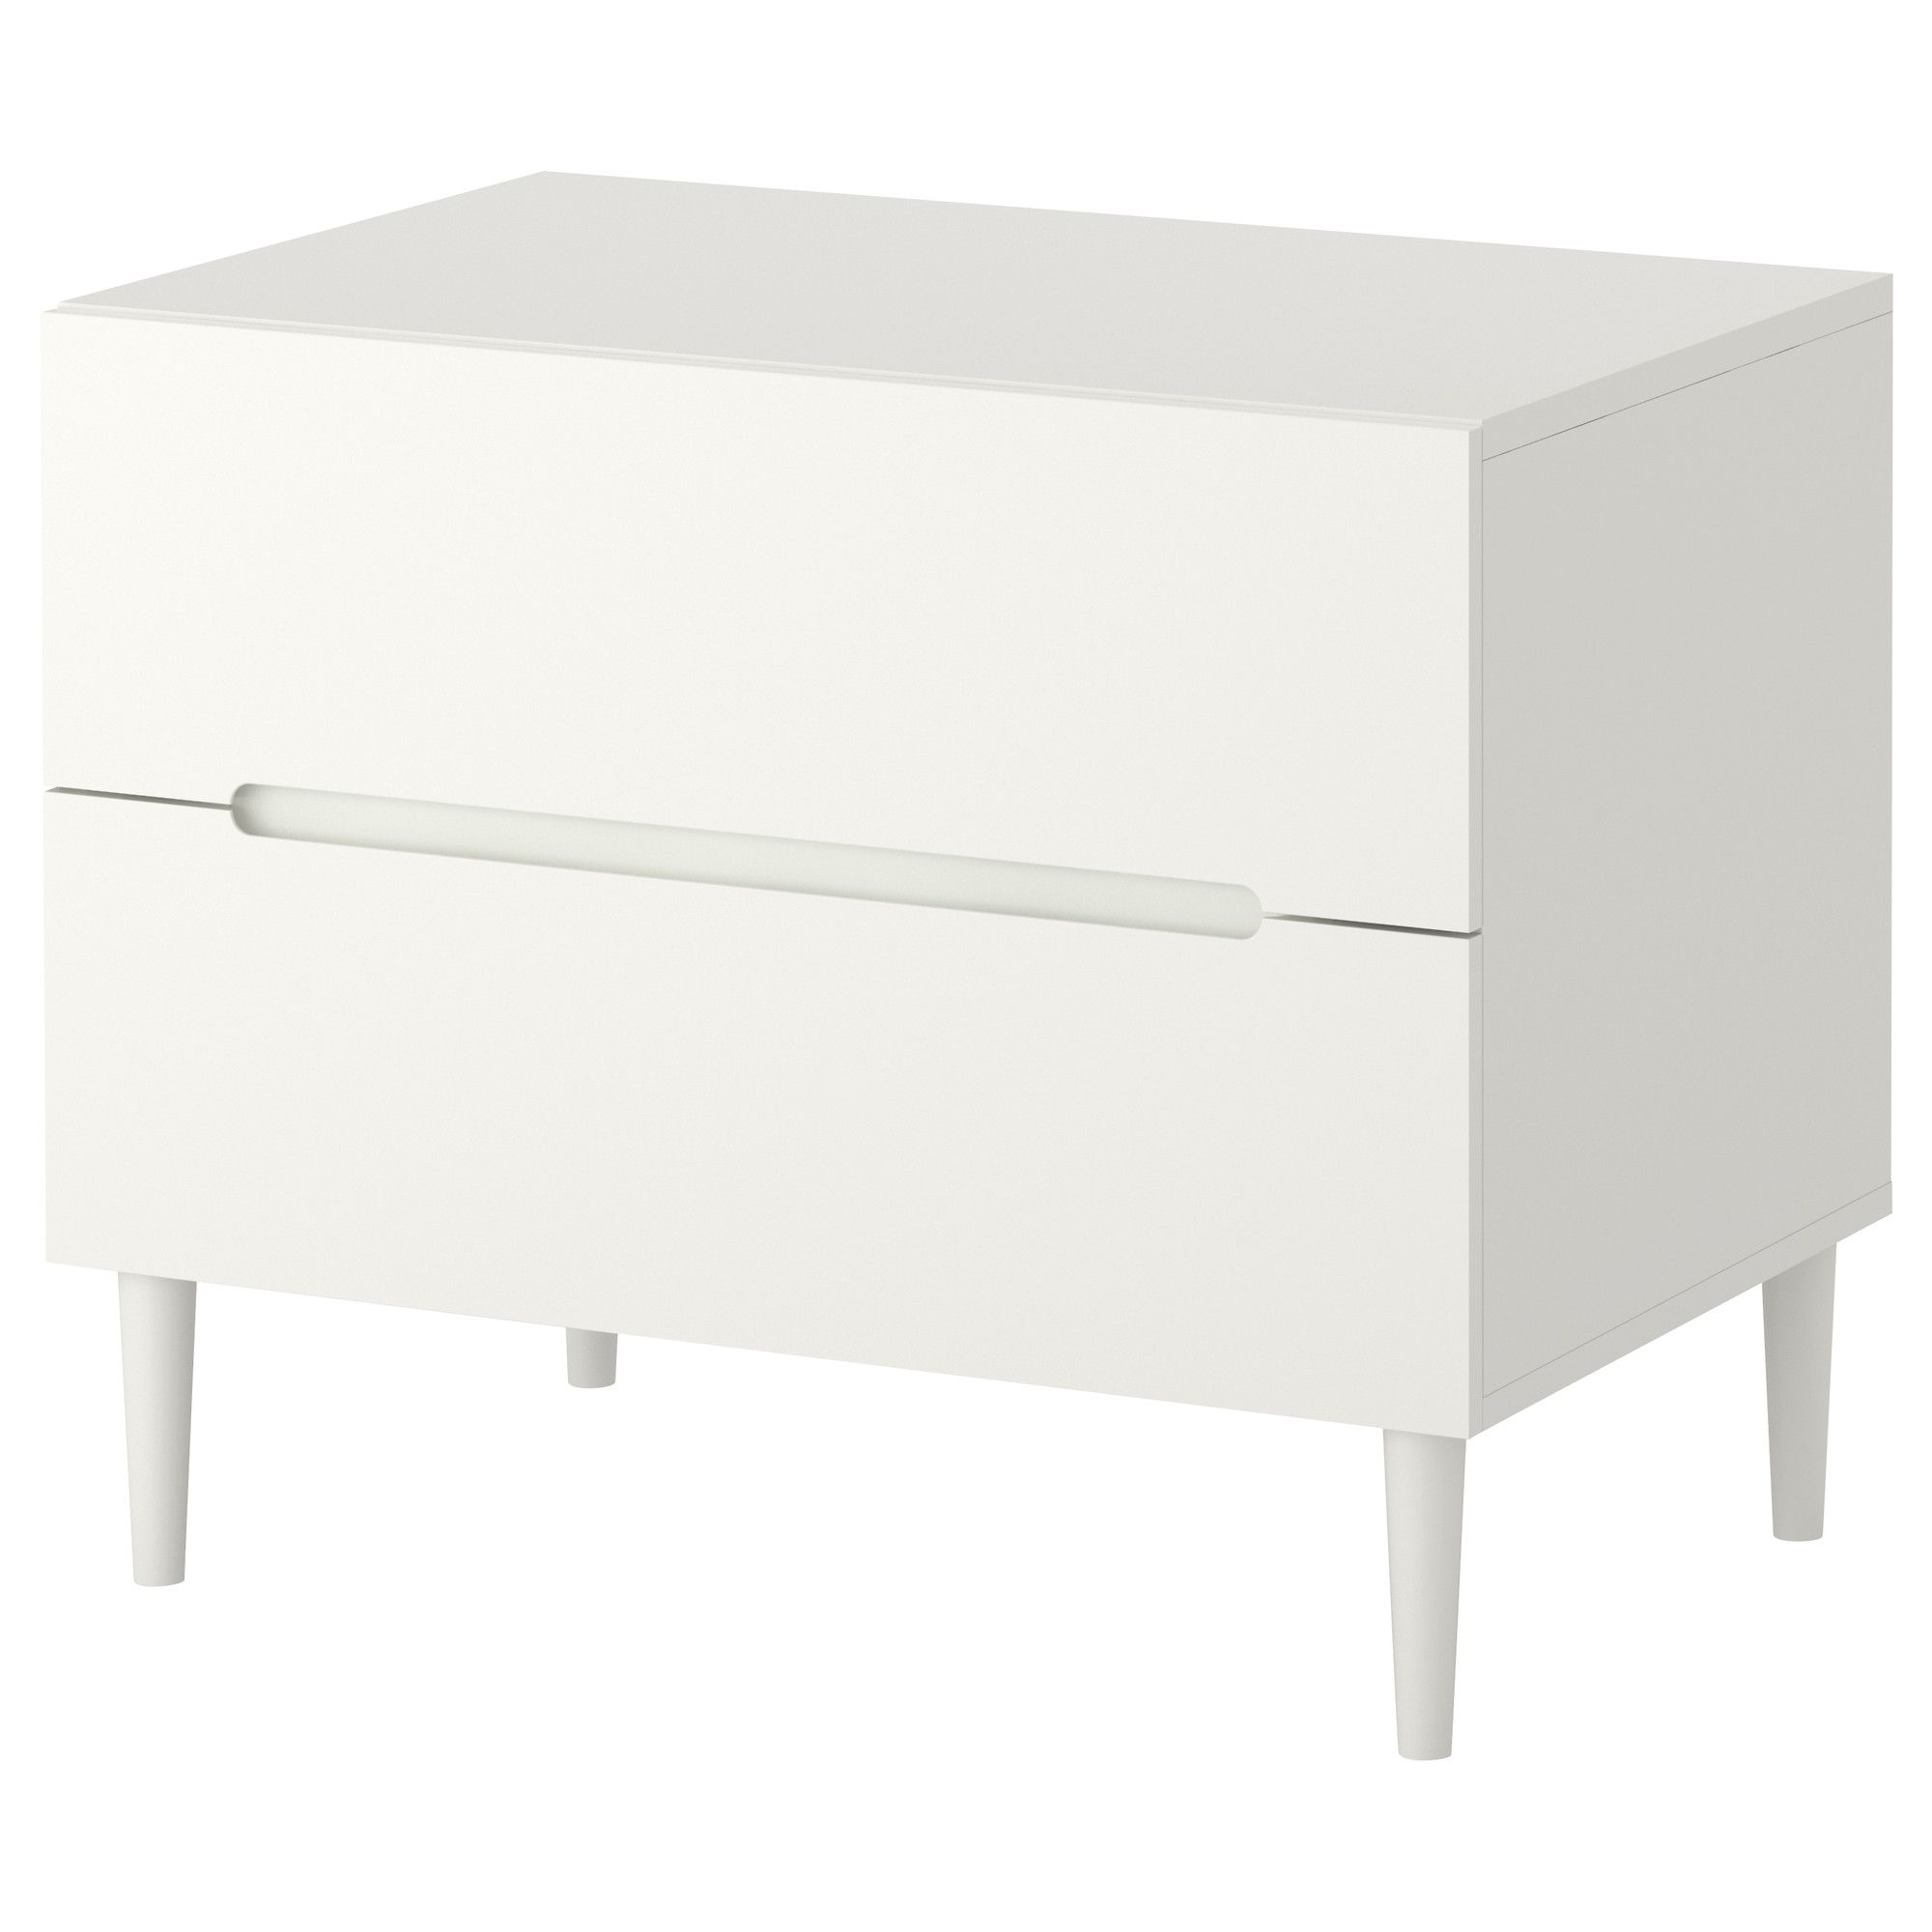 kitchenhome coolest handles knobs merchandise on and antique the replacement home pull wanted drawer of handle dresser crystal bedroom door ideas pulls ive s cabinet always best disney with these wardrobe depot ikea one ever furniture about pinterest